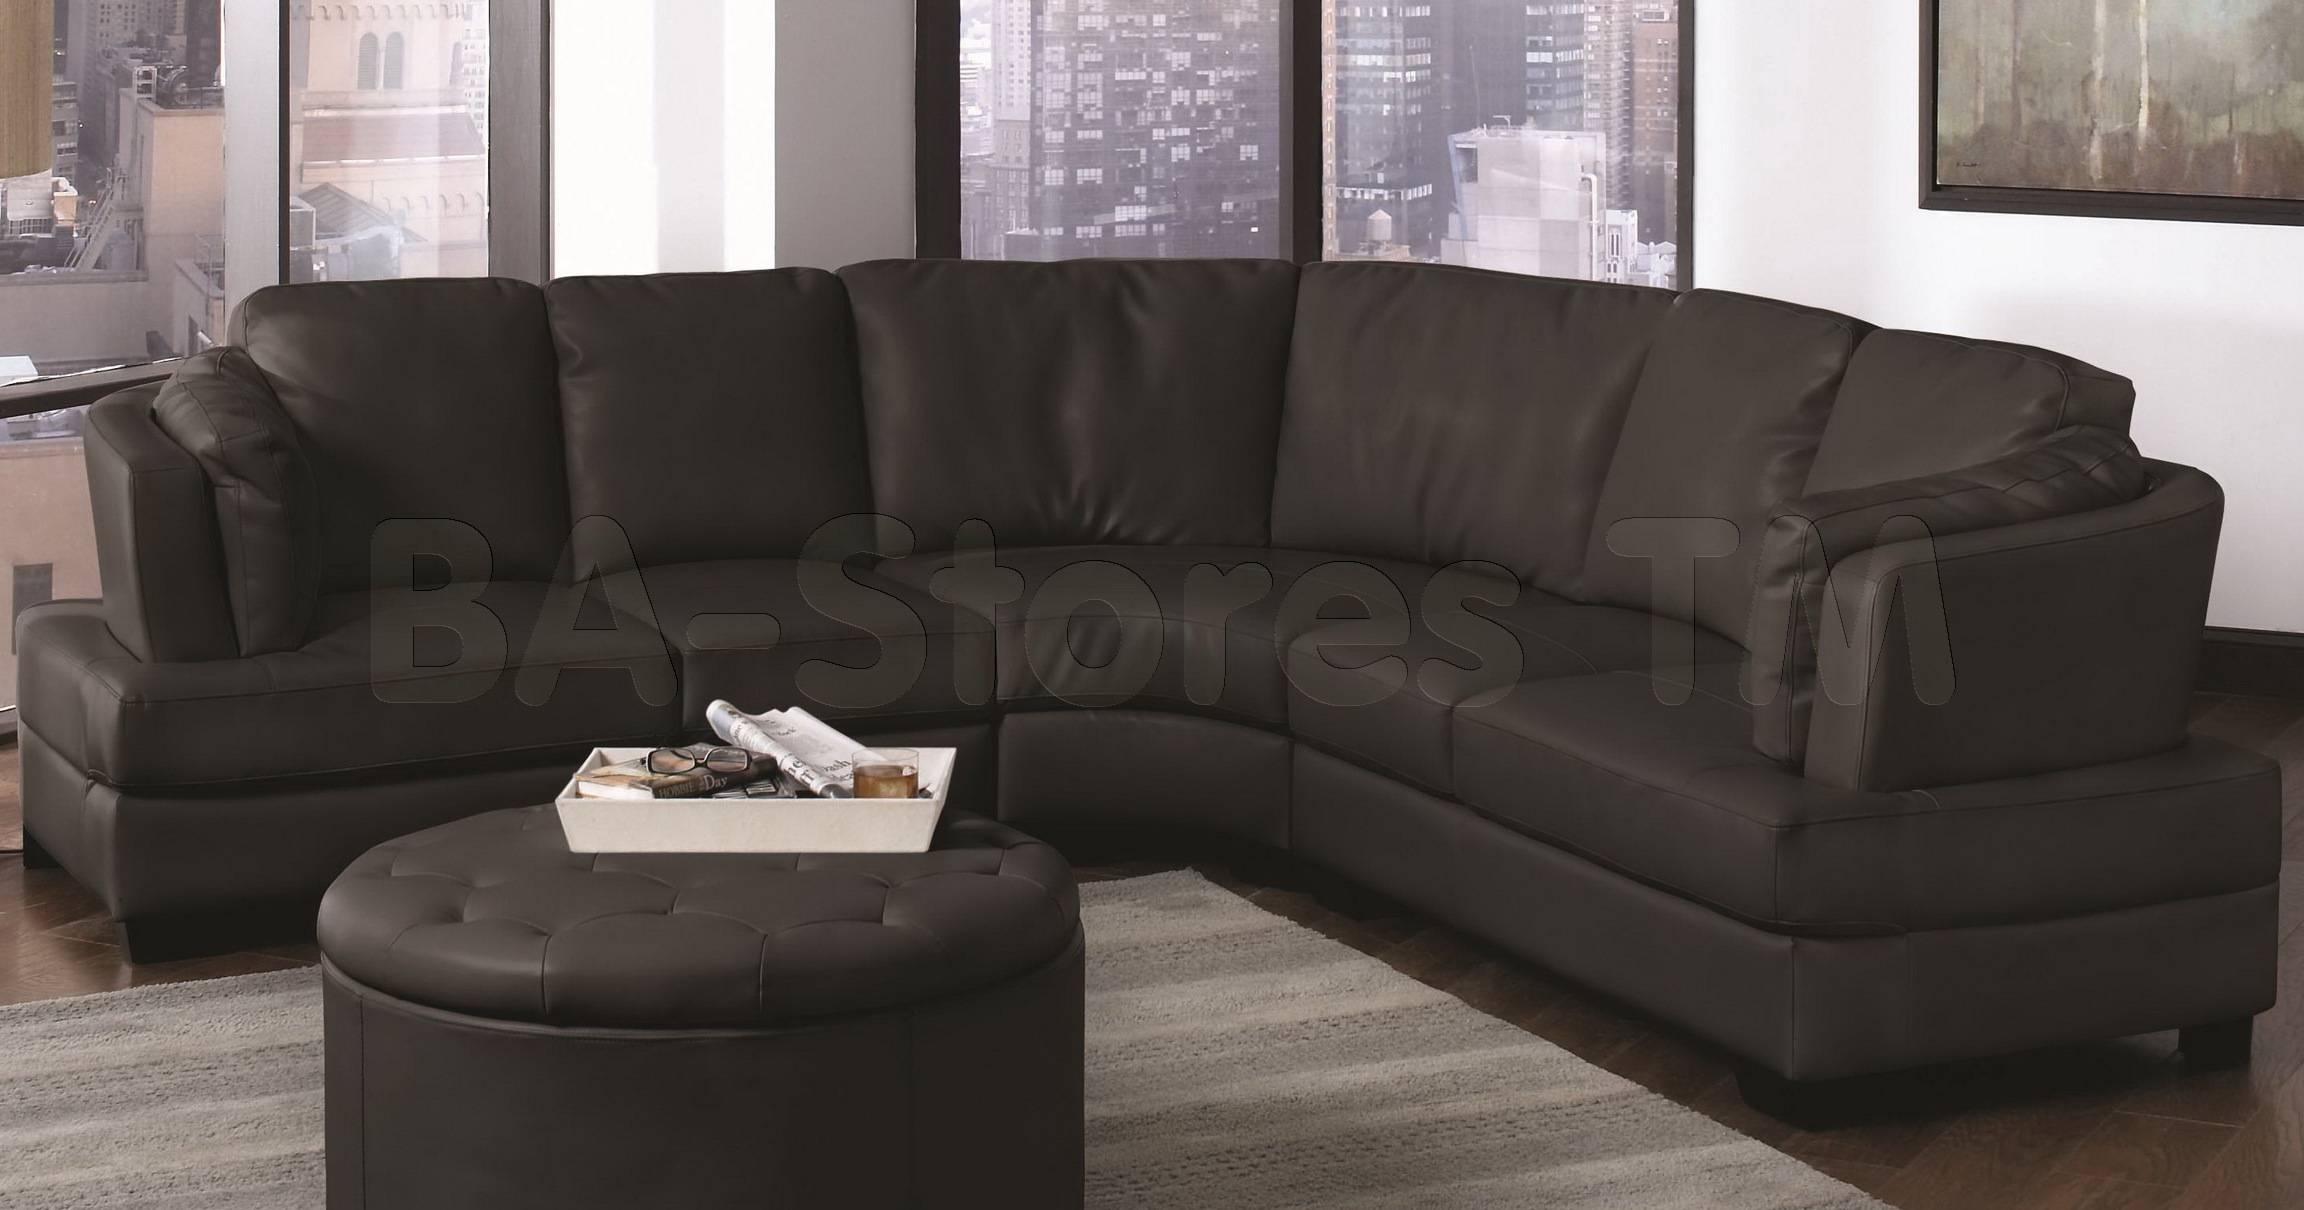 15 s Half Circle Sectional Sofas